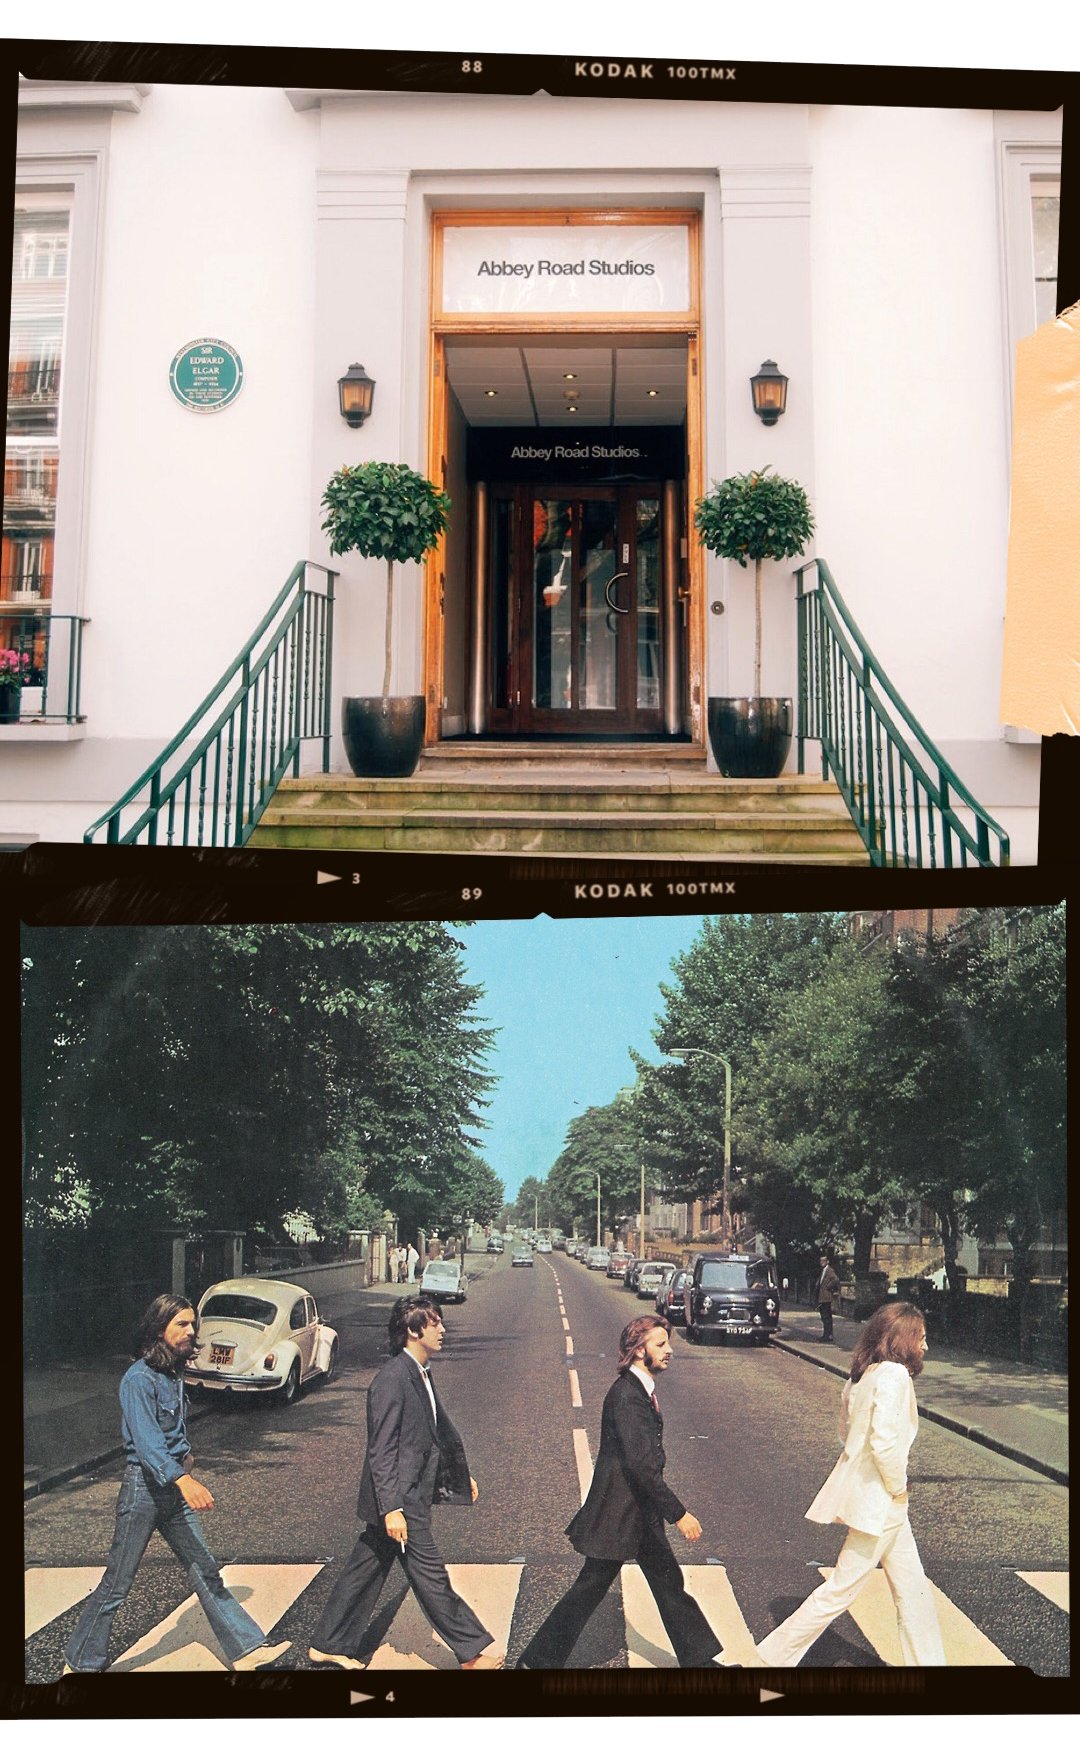 ABBEY ROAD STUDIOS - Possibly the most famous recording studio, popularly known for its association with The Beatles. The Beatles recorded 190 out of their 210 songs at Abbey Road Studios. While you cannot visit the inside, just outside you can check out the famous crosswalk from The Beatles, Abbey Road album.Location:3 Abbey Road, NW8 9AY